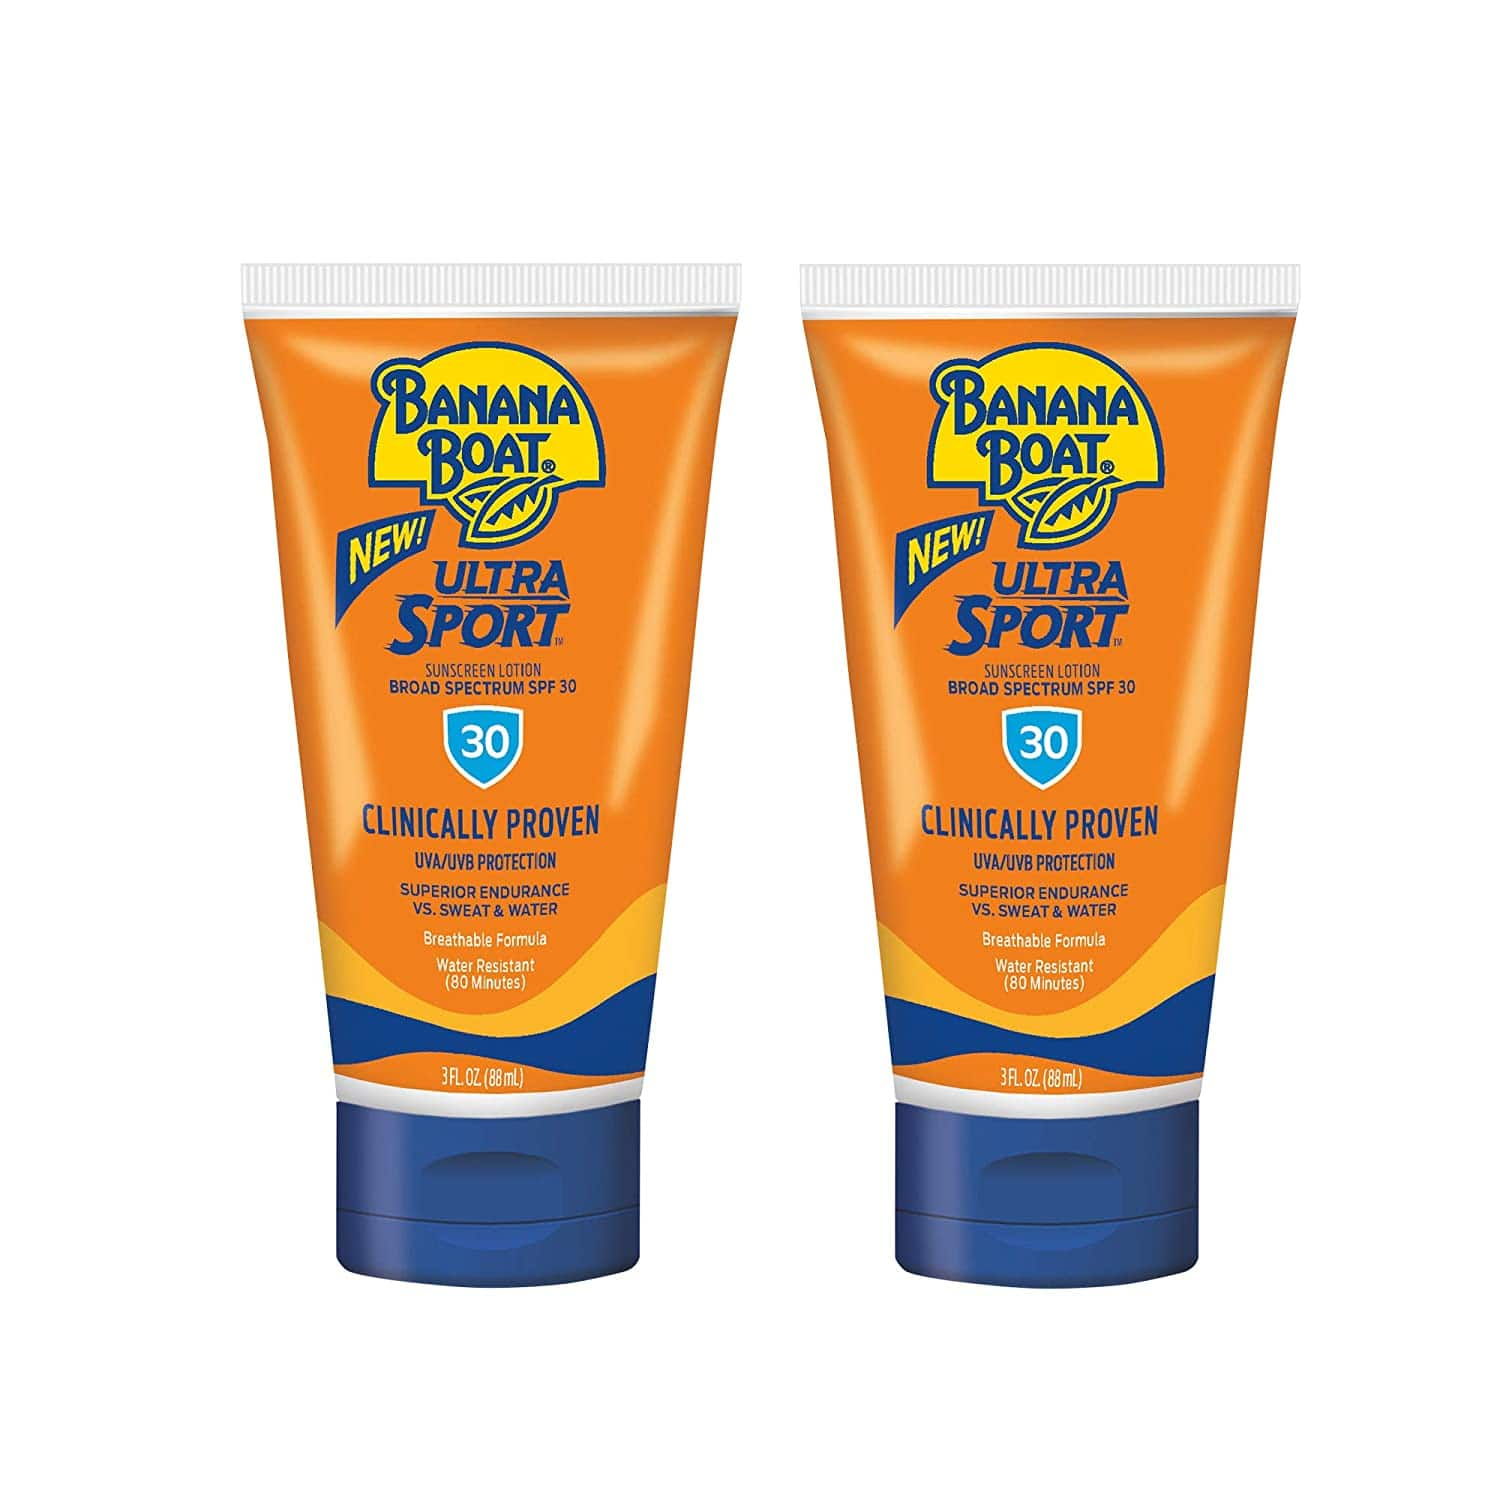 2-Pack 3oz Banana Boat Ultra Sport SPF 30 Sunscreen Lotion